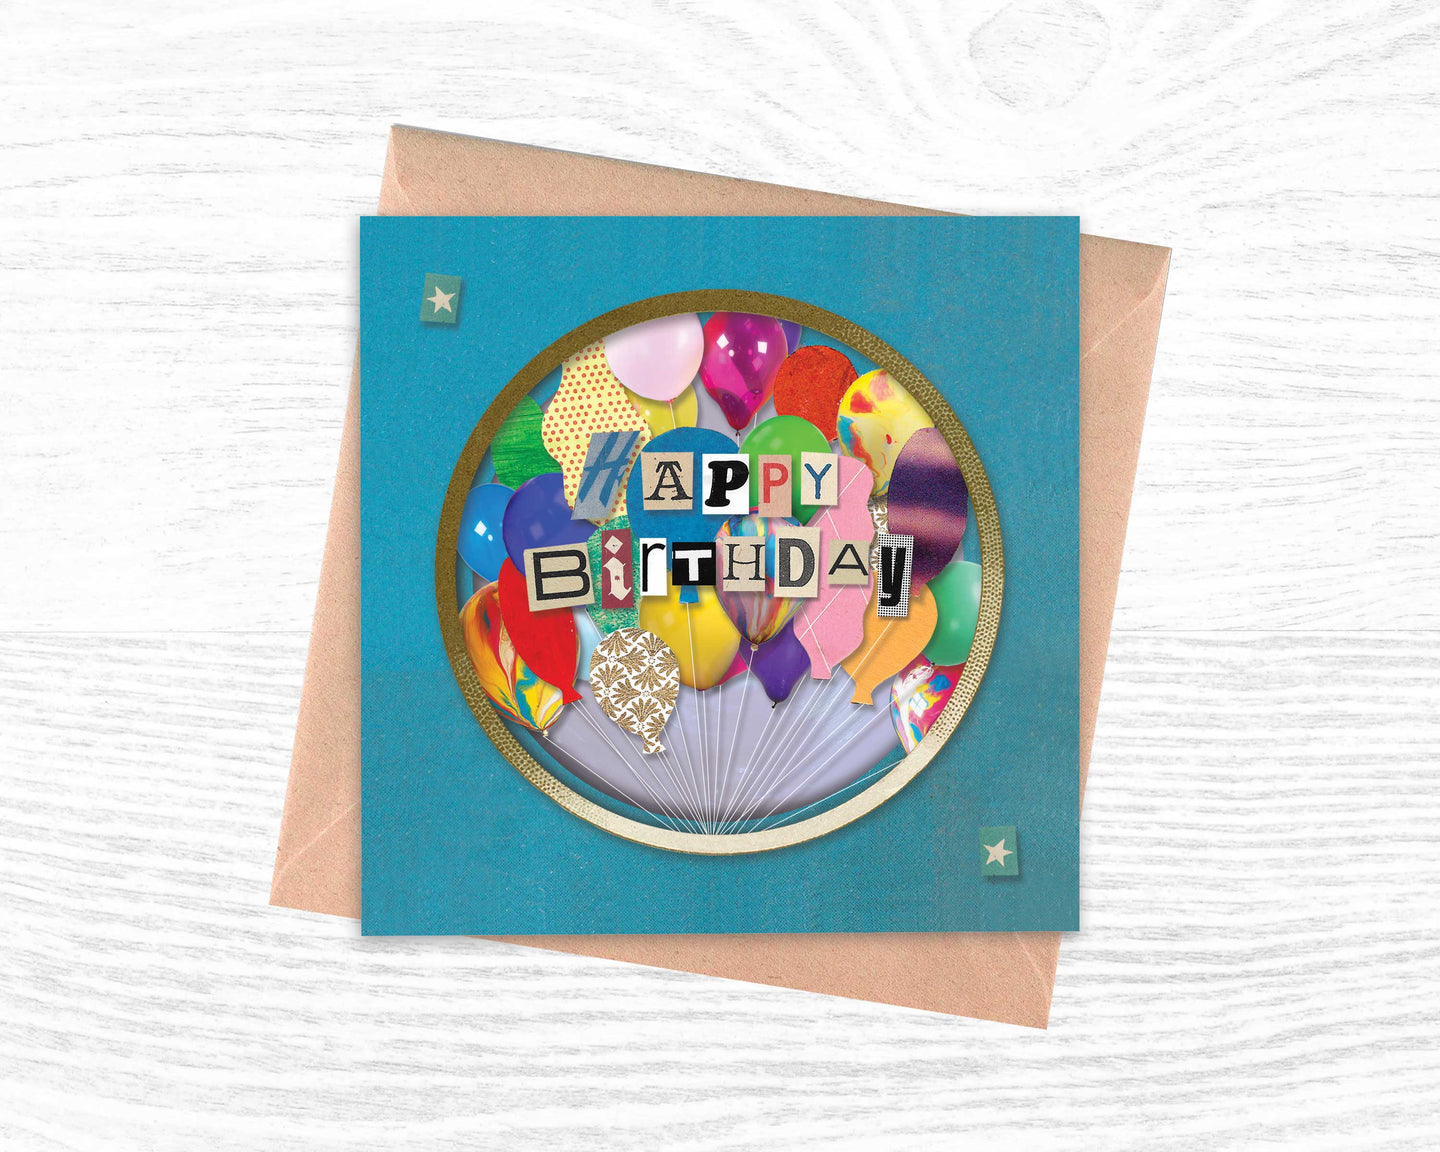 'Happy Birthday' - Luxury Greeting Card